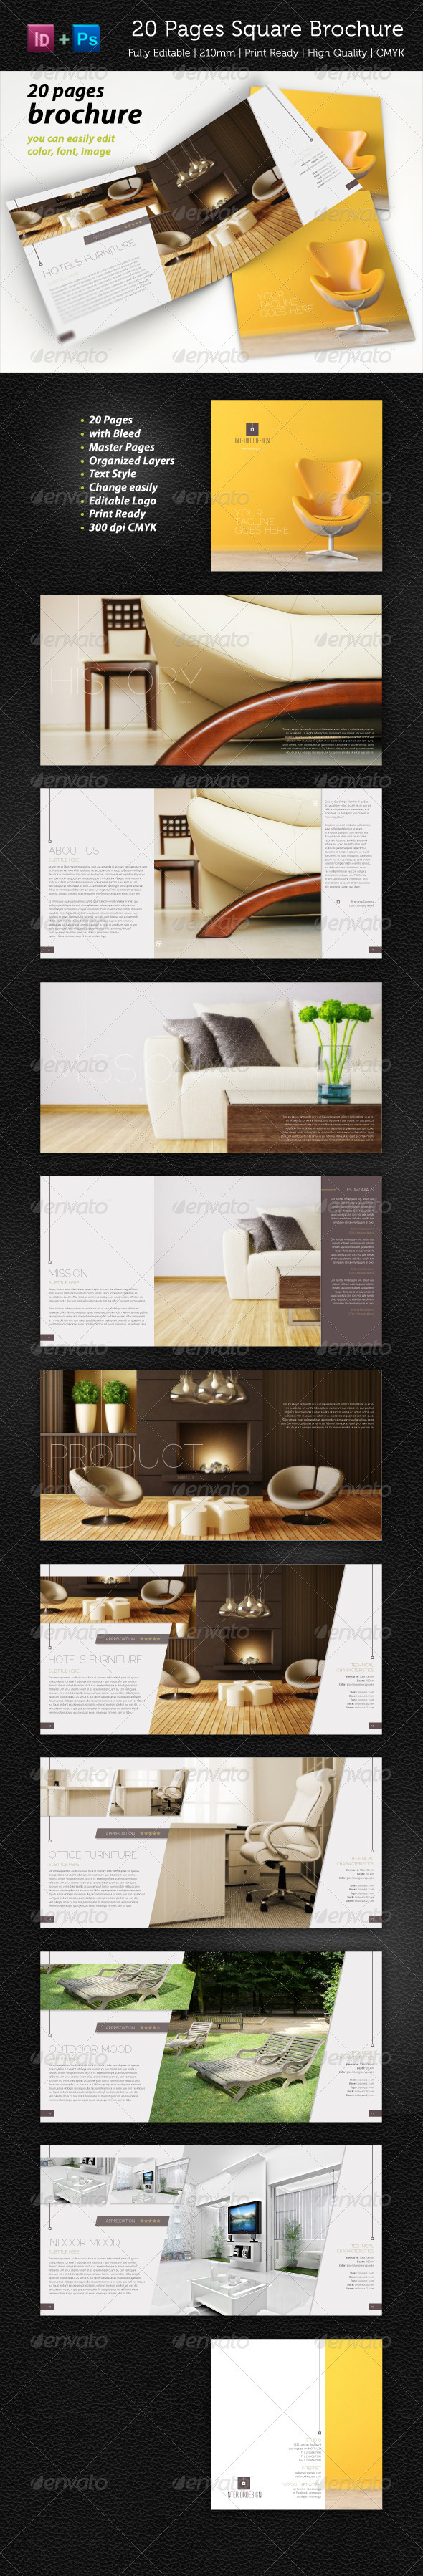 20 Pages Square Brochure Vol. 1 - Corporate Brochures